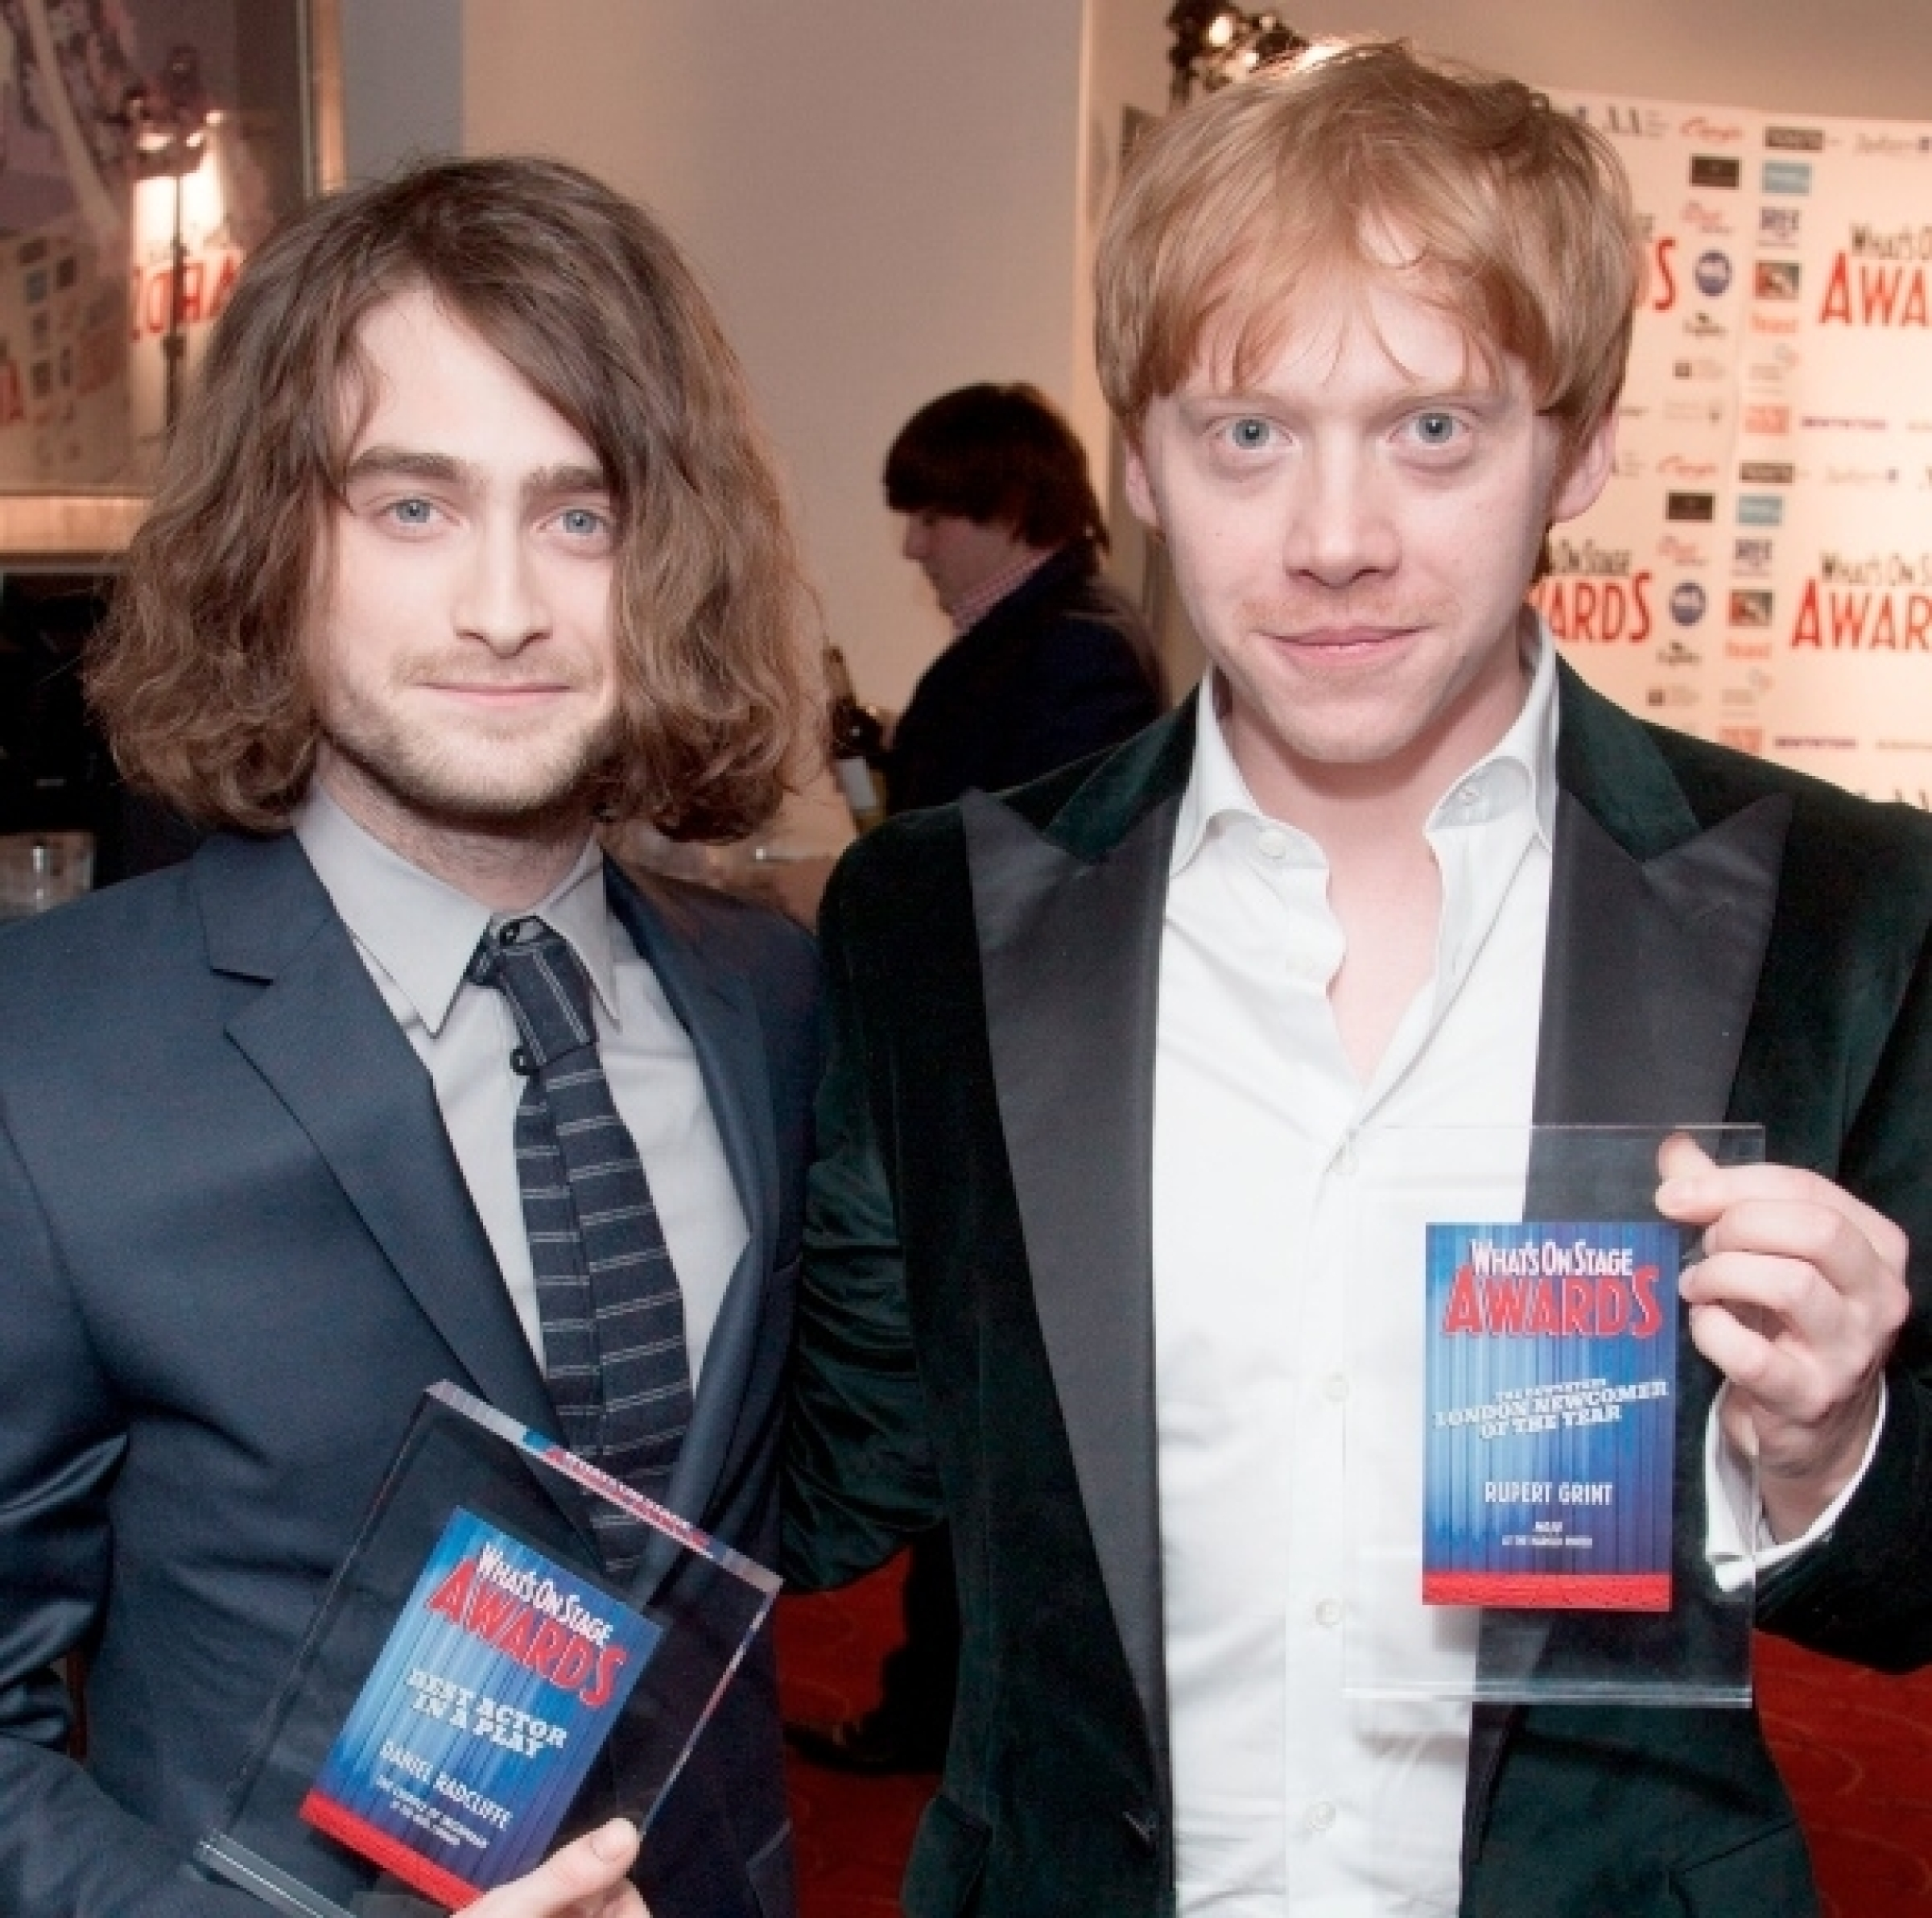 Daniel Radcliffe Says Hed Love To Work With Rupert Grint On Stage One Day